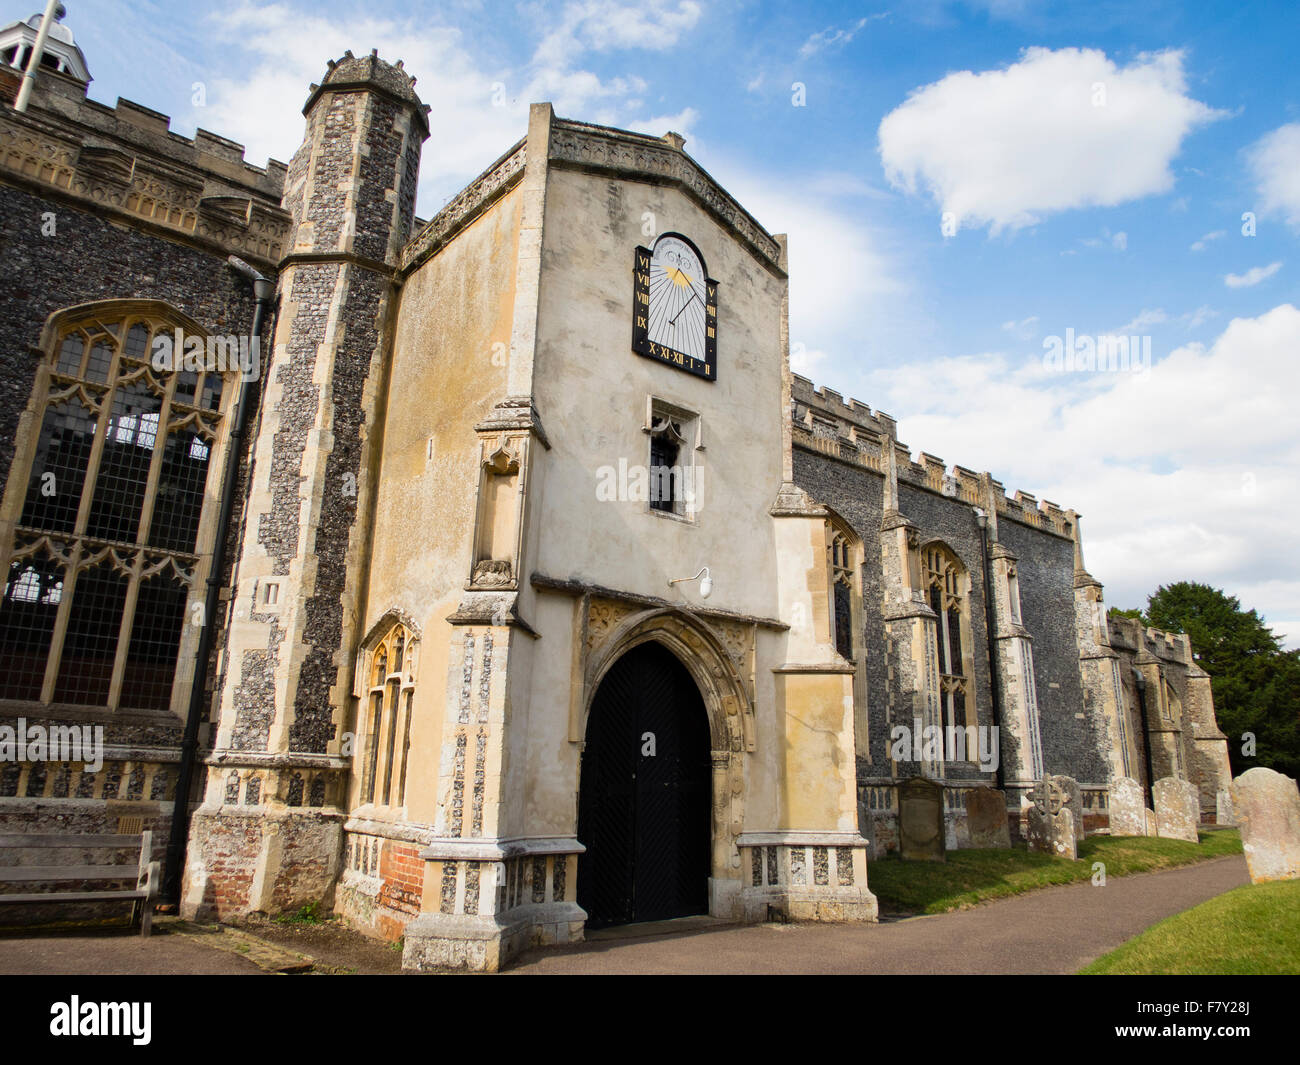 Church of St Mary the Virgin, East Bergholt - Stock Image